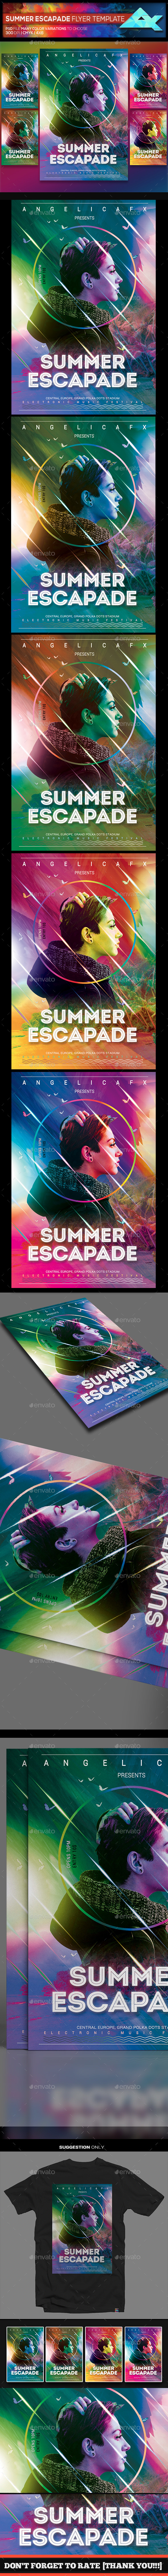 Summer Escapade Flyer Template - Events Flyers